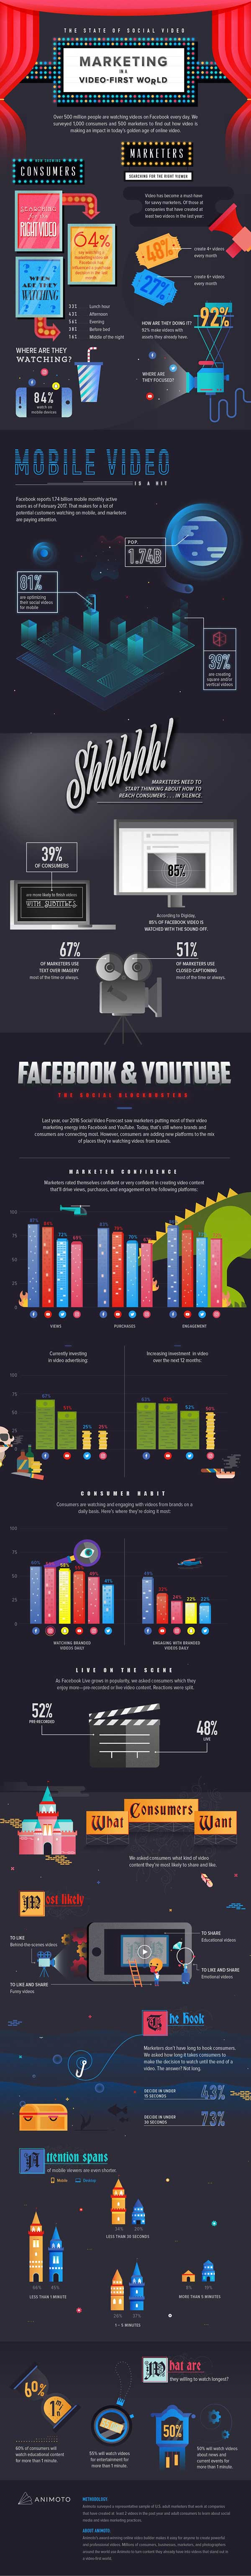 The State of Social Video by Animoto - Infographic